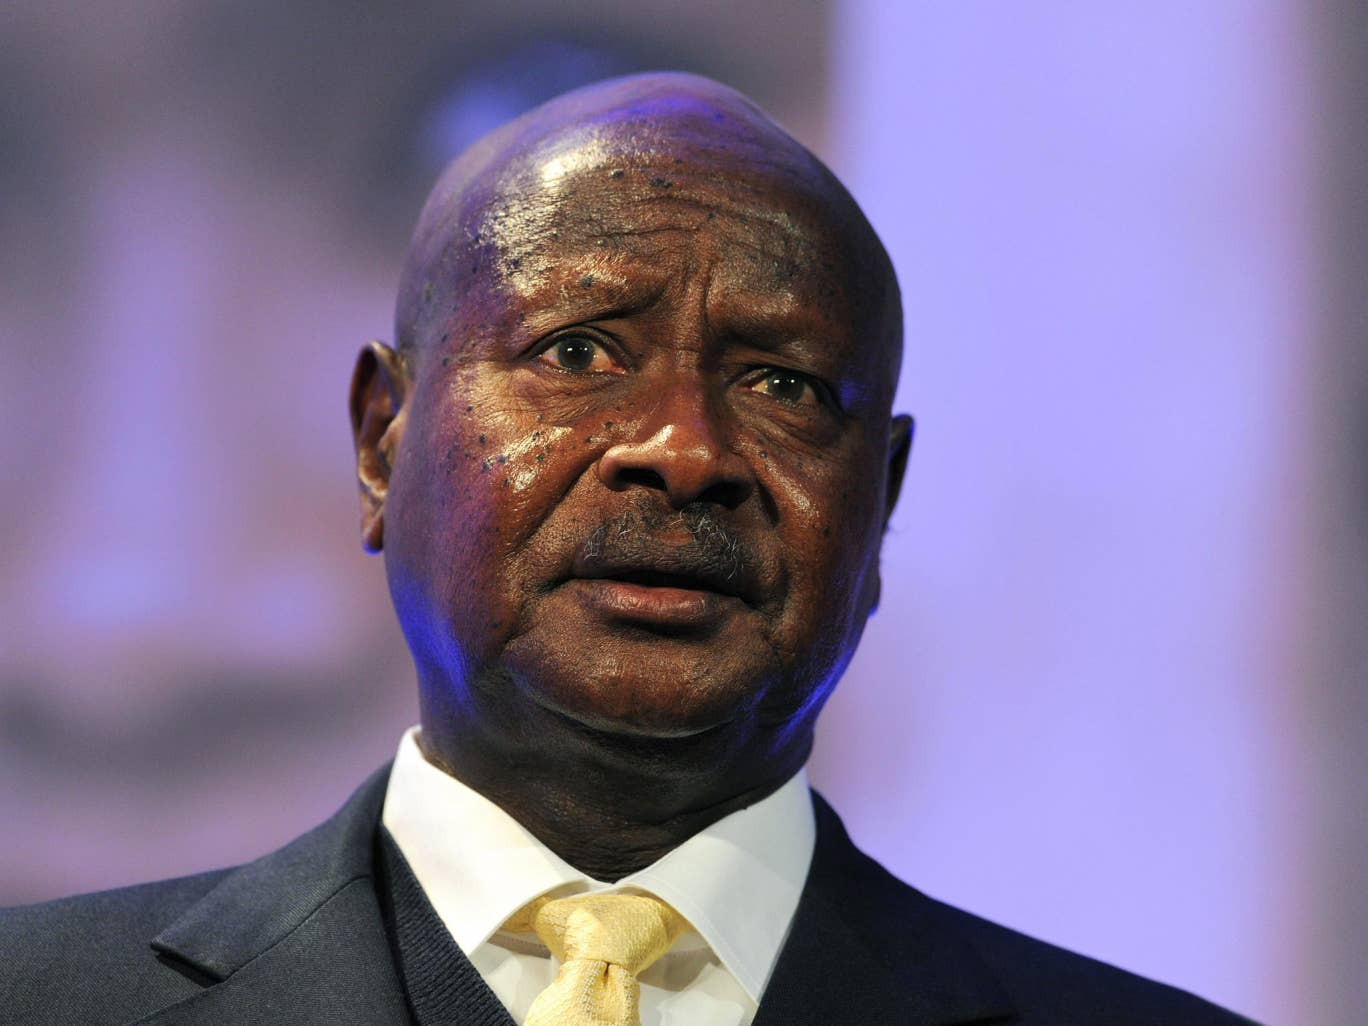 Ugandan President Yoweri Museveni signed the anti-gay bill in February